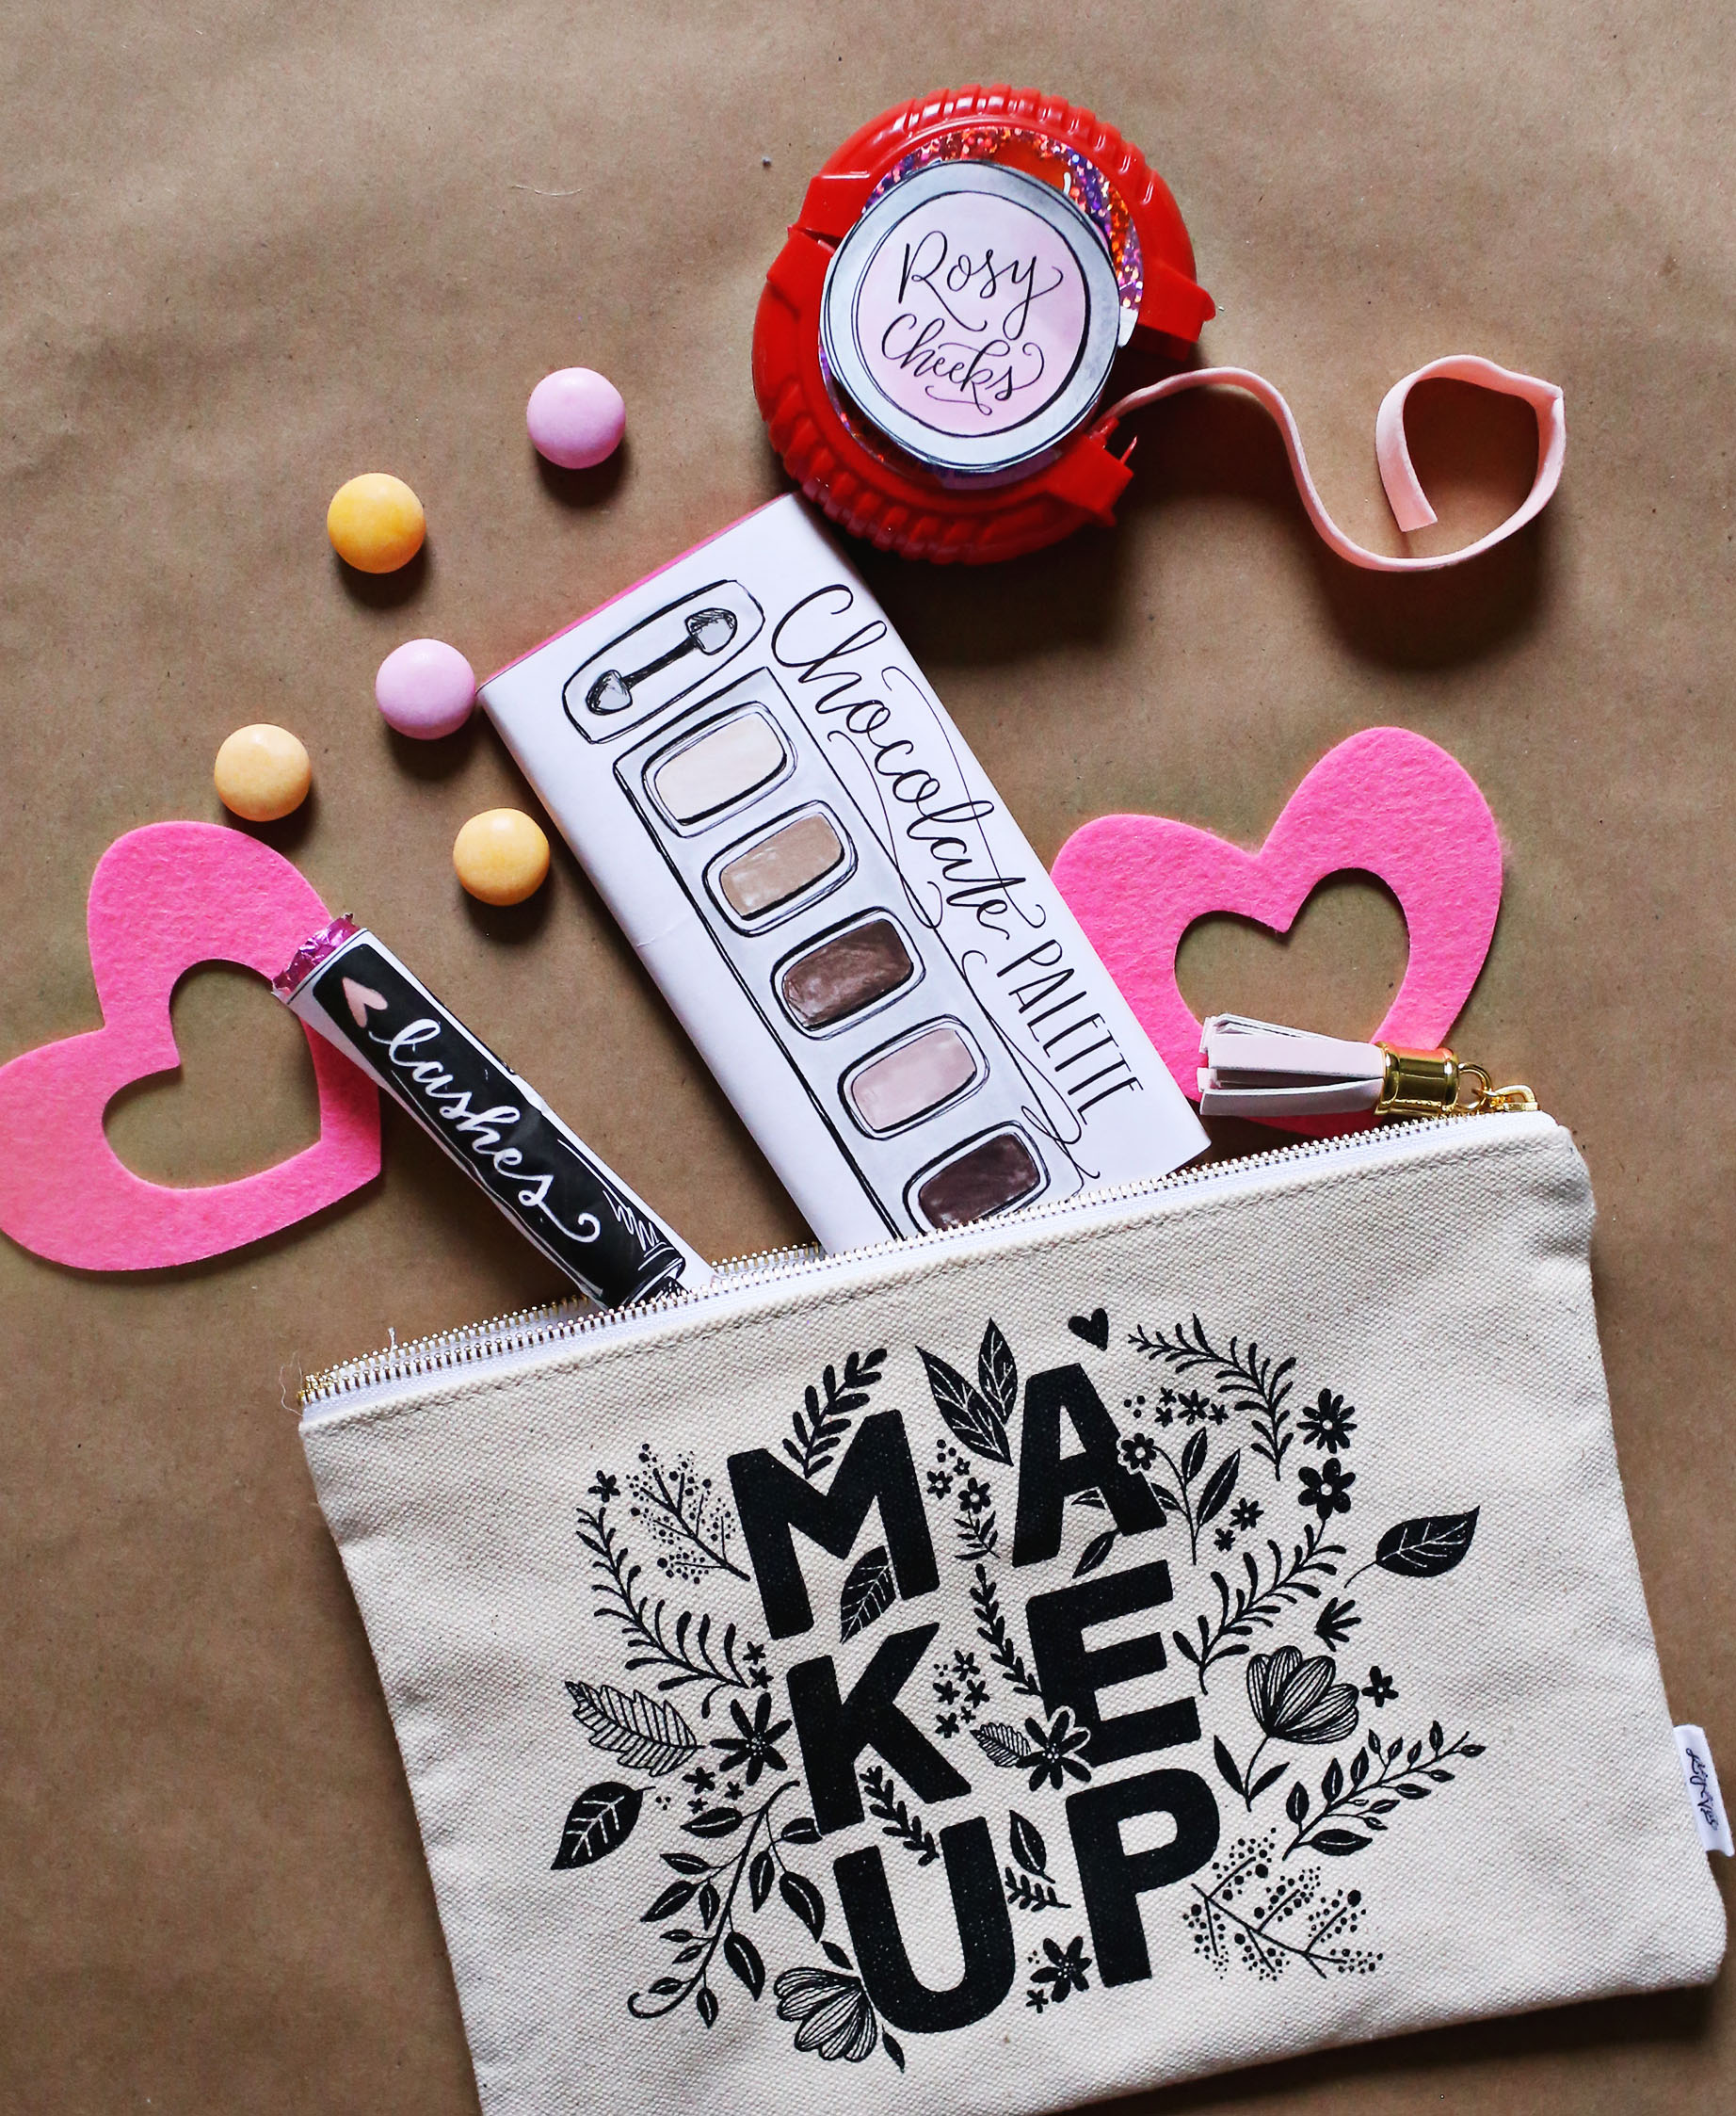 Candy never looked cuter! Makeup-themed Galentine's Gift - Lily & Val Living